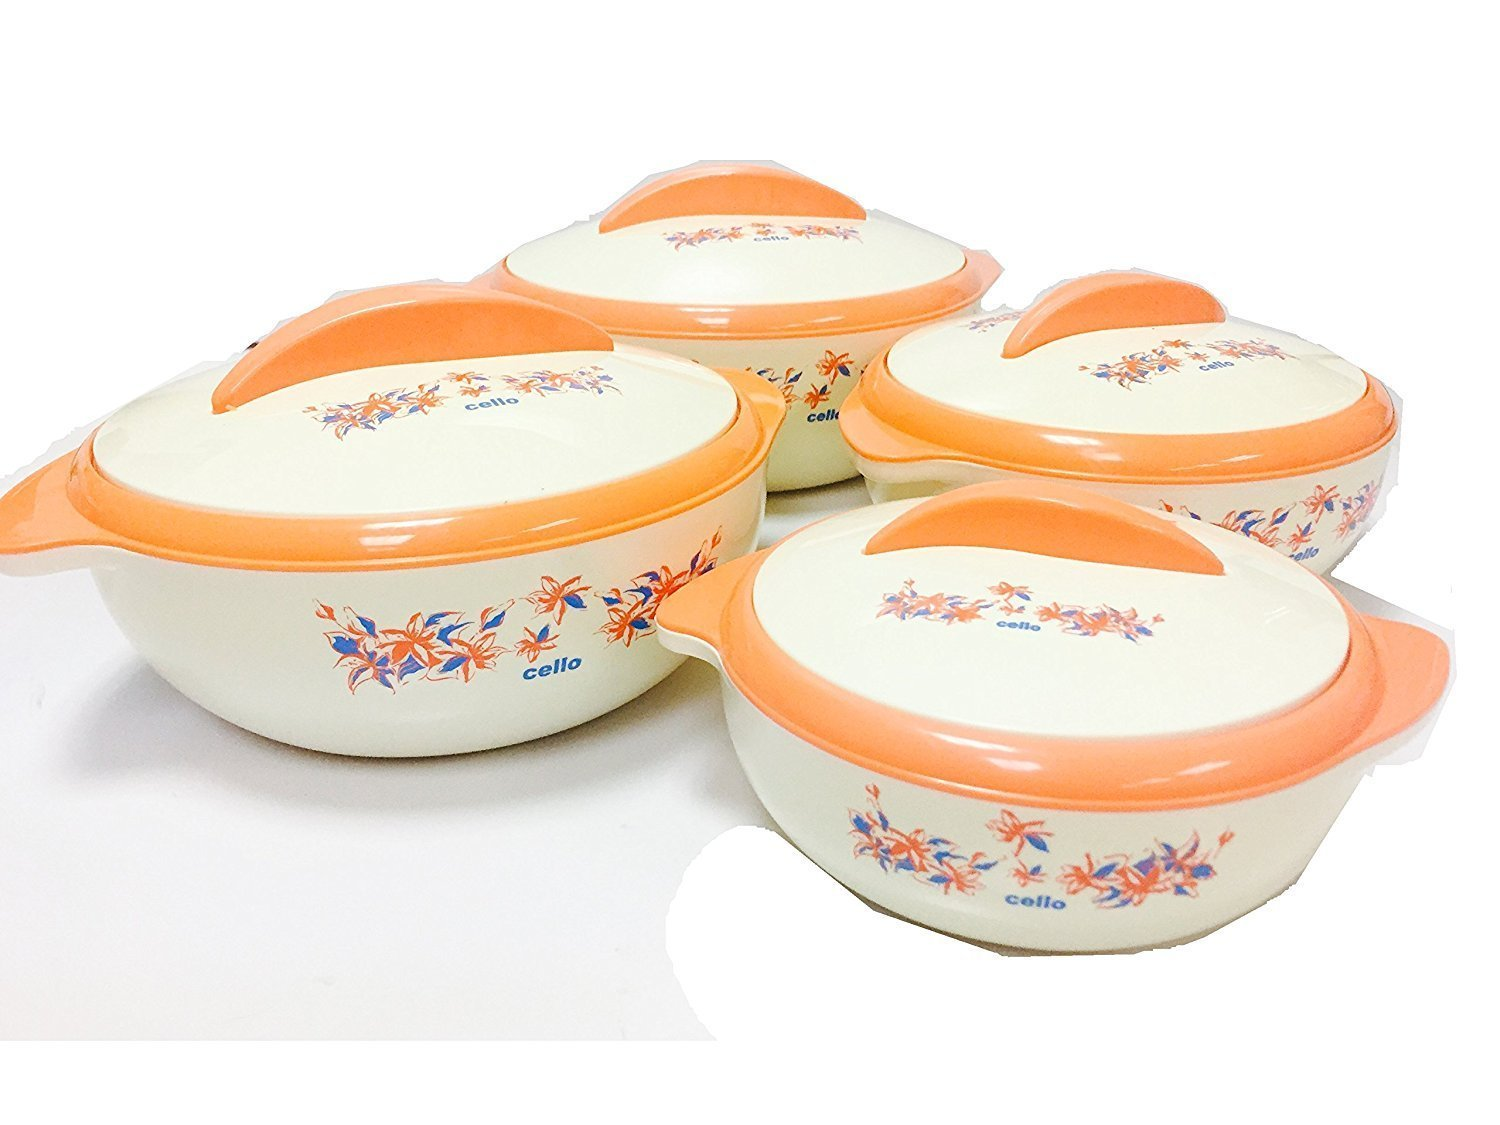 Cello Sizzler Insulated Casserole Food Server Hot Pot Gift Set (4Piece Set) by Cello